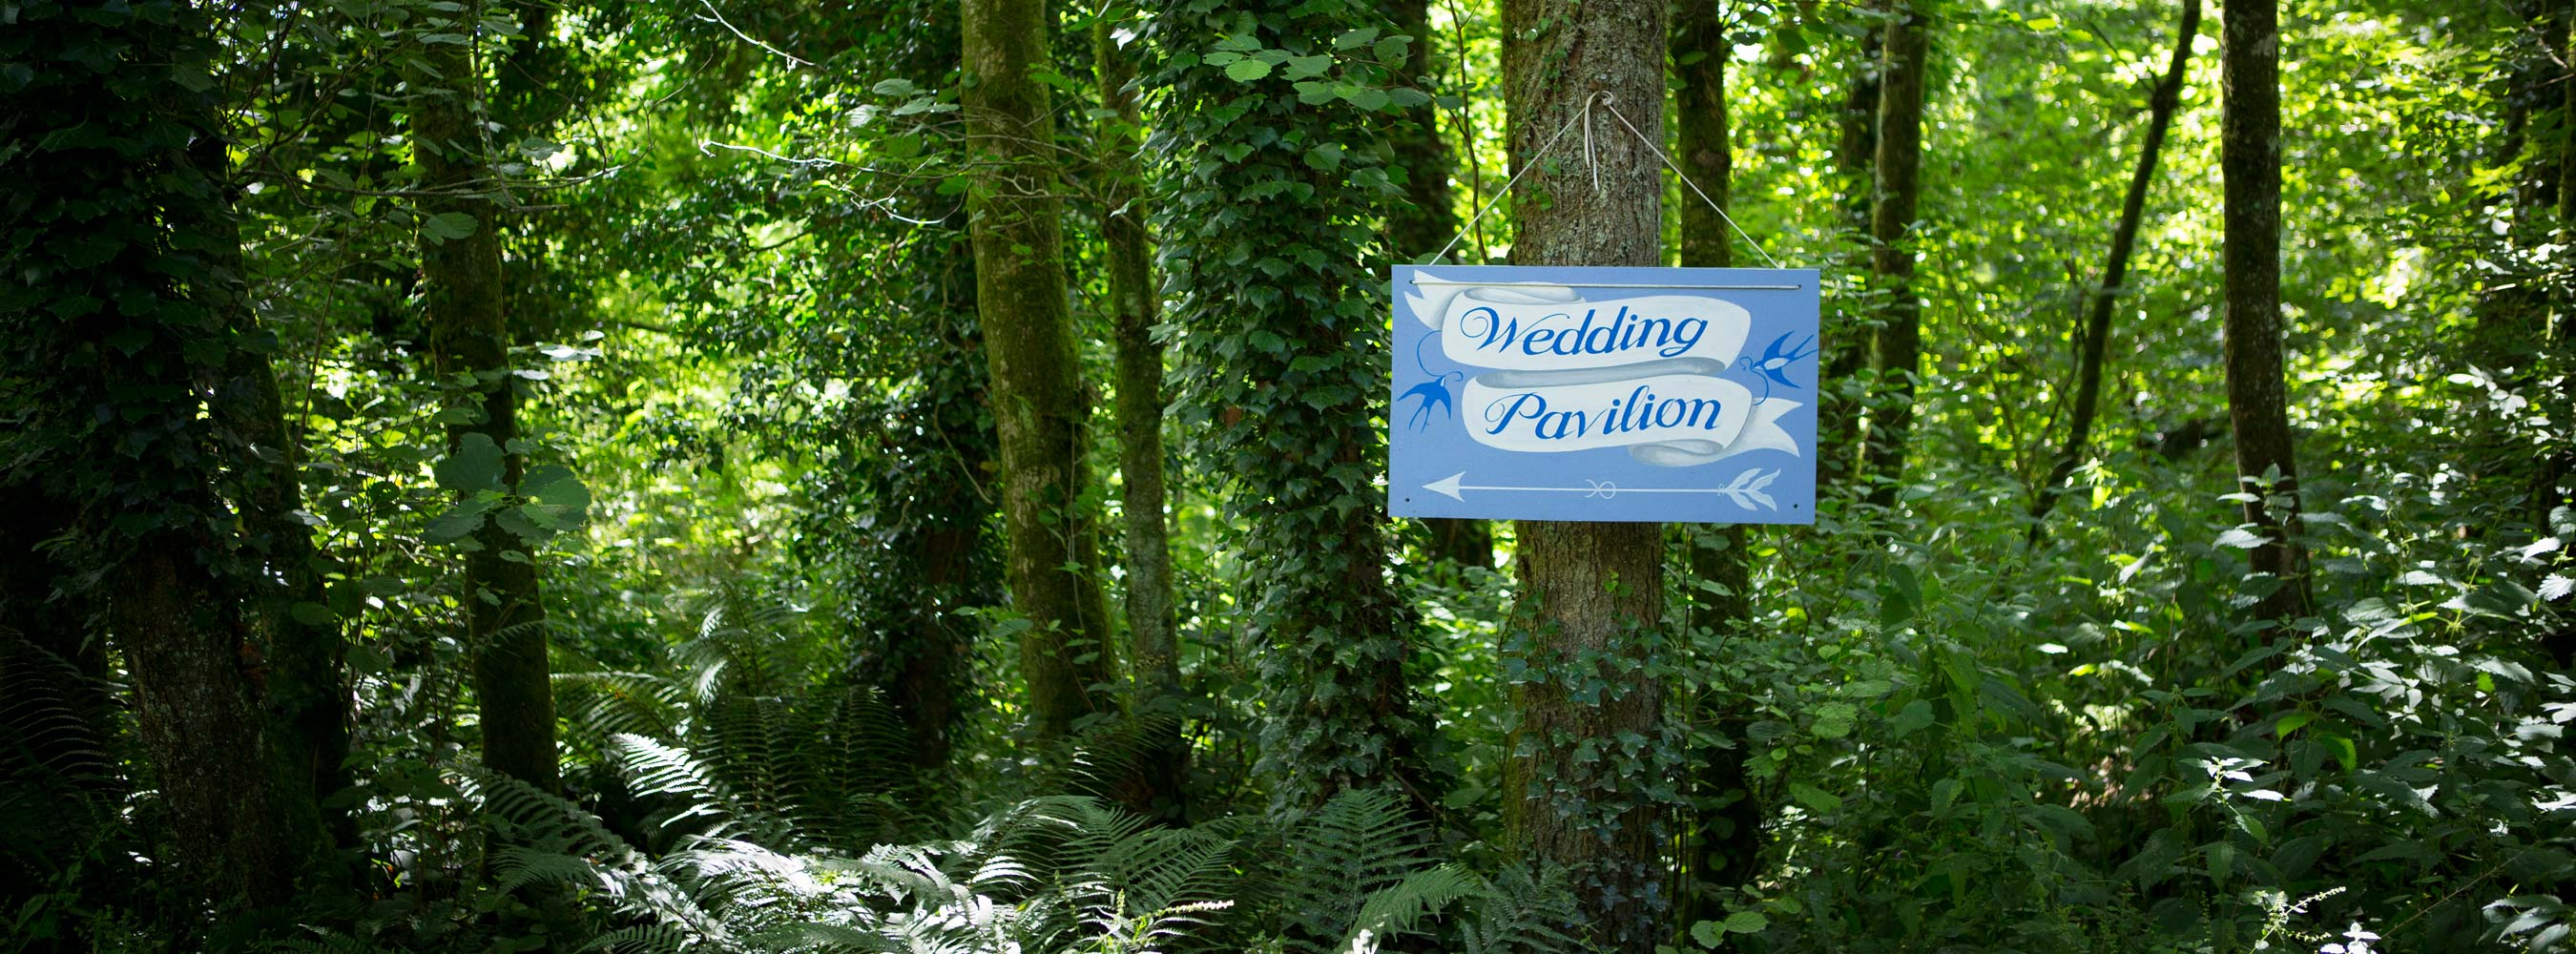 Wedding Pavilion Sign In Woods